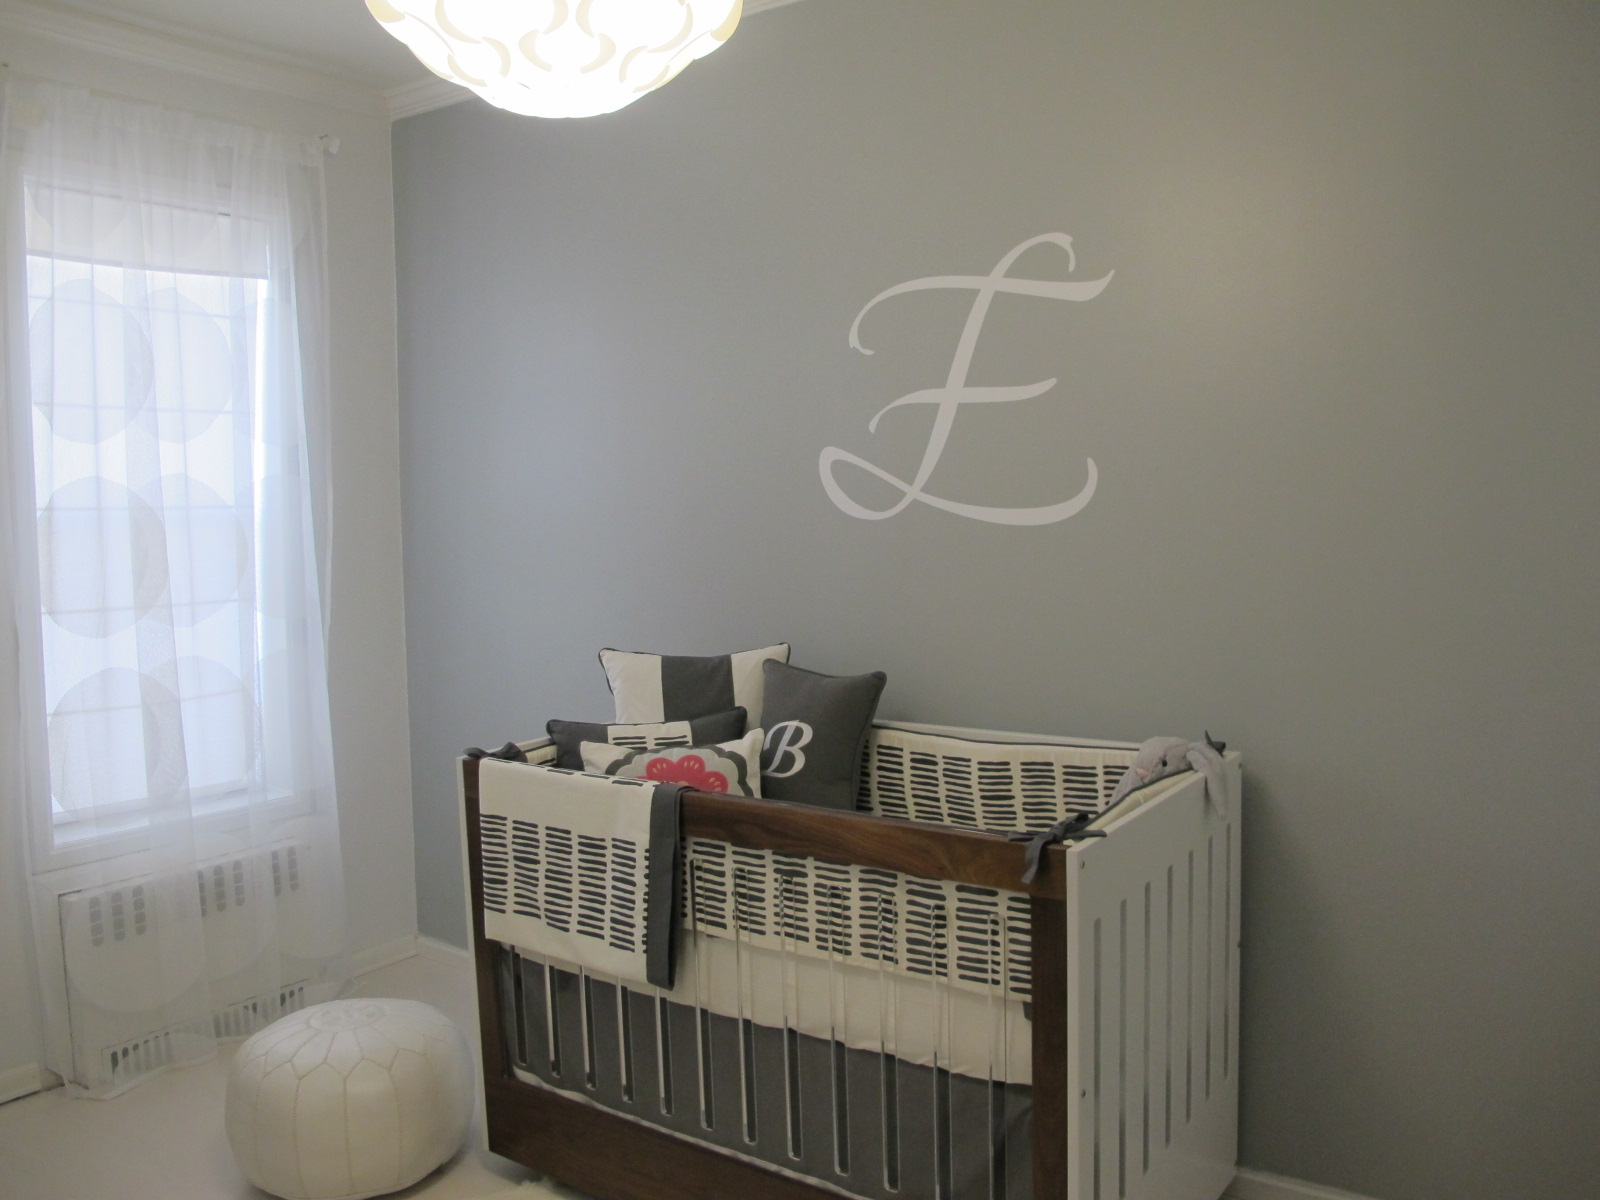 Single Initial Beau Rivage Wall Decal